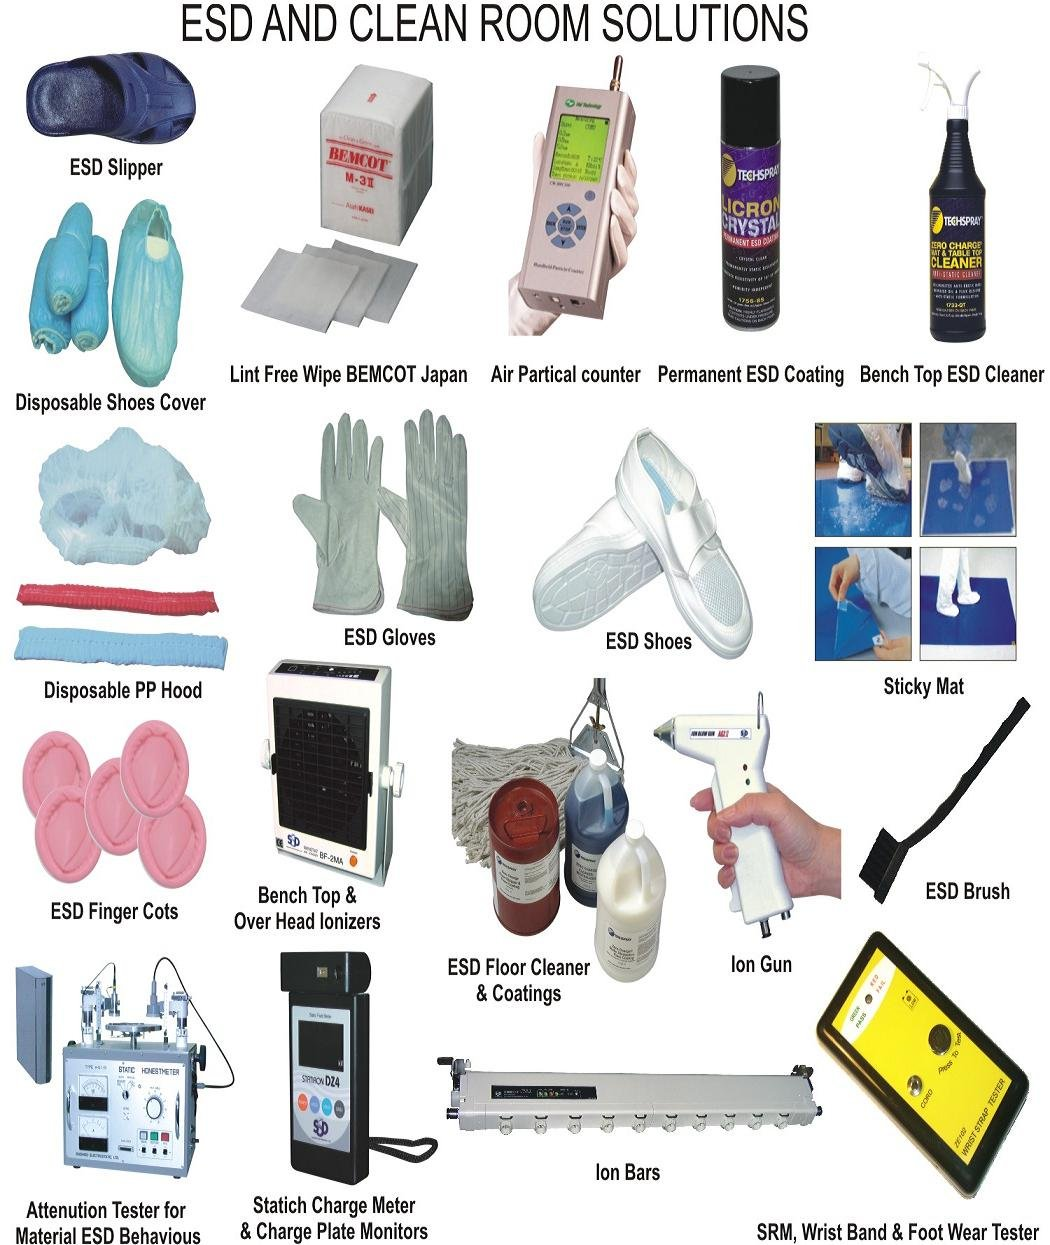 Antistatic Esd Apron, ESD Apron, ESD Anti Static Wrist Strap Band, ESD Gloves, ESD Footwear - ESD Slippers and ESD Shoes